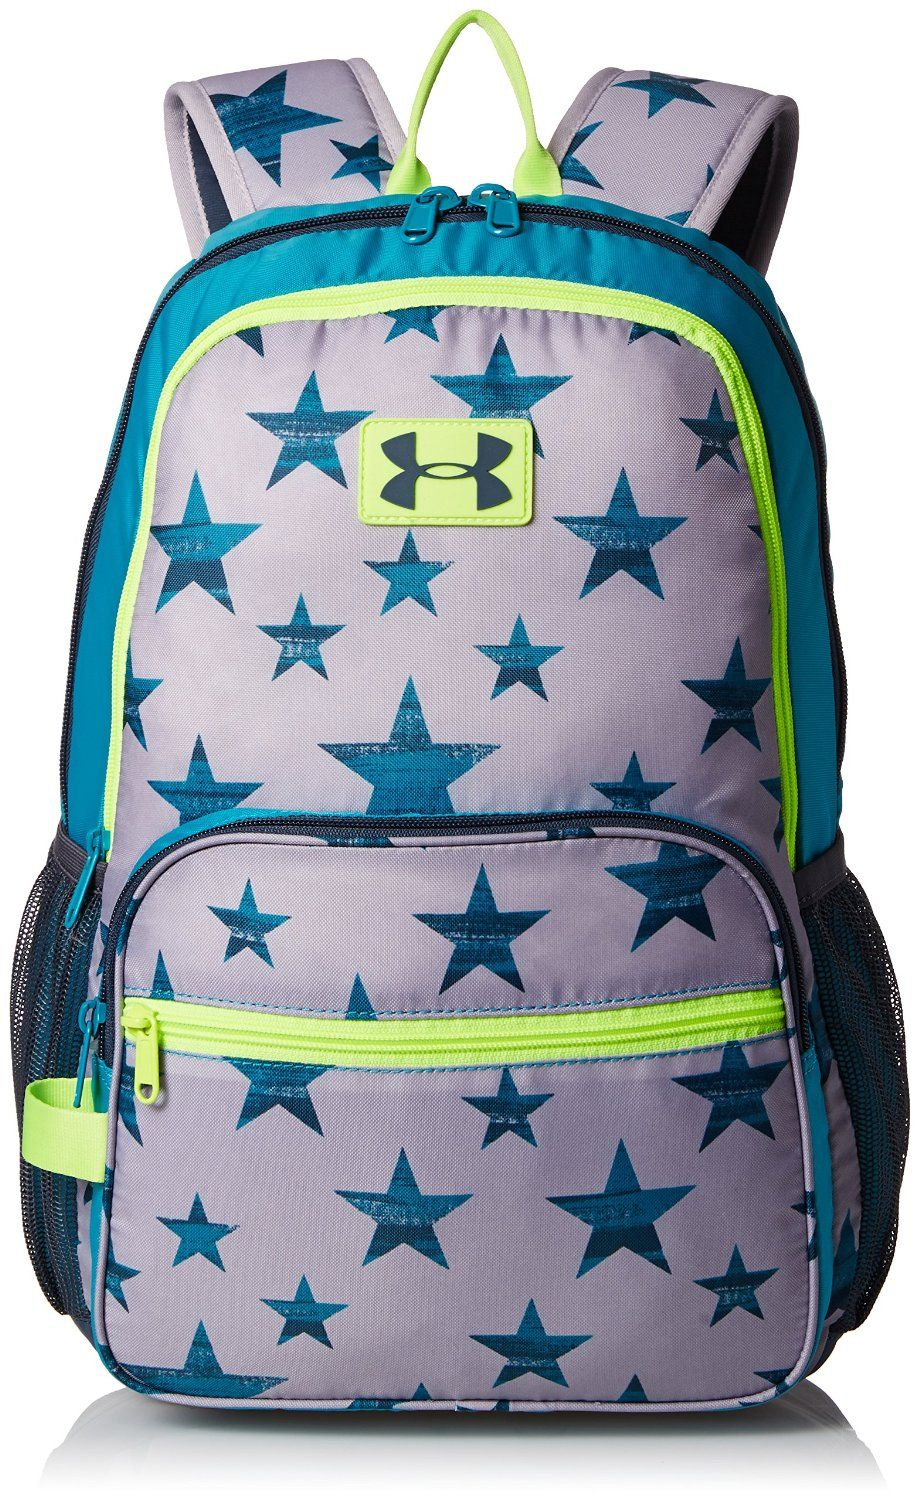 93e589254a Amazon.com: Under Armour Girl's Great Escape Backpack, Cloud Gray, One  Size: Sports & Outdoors